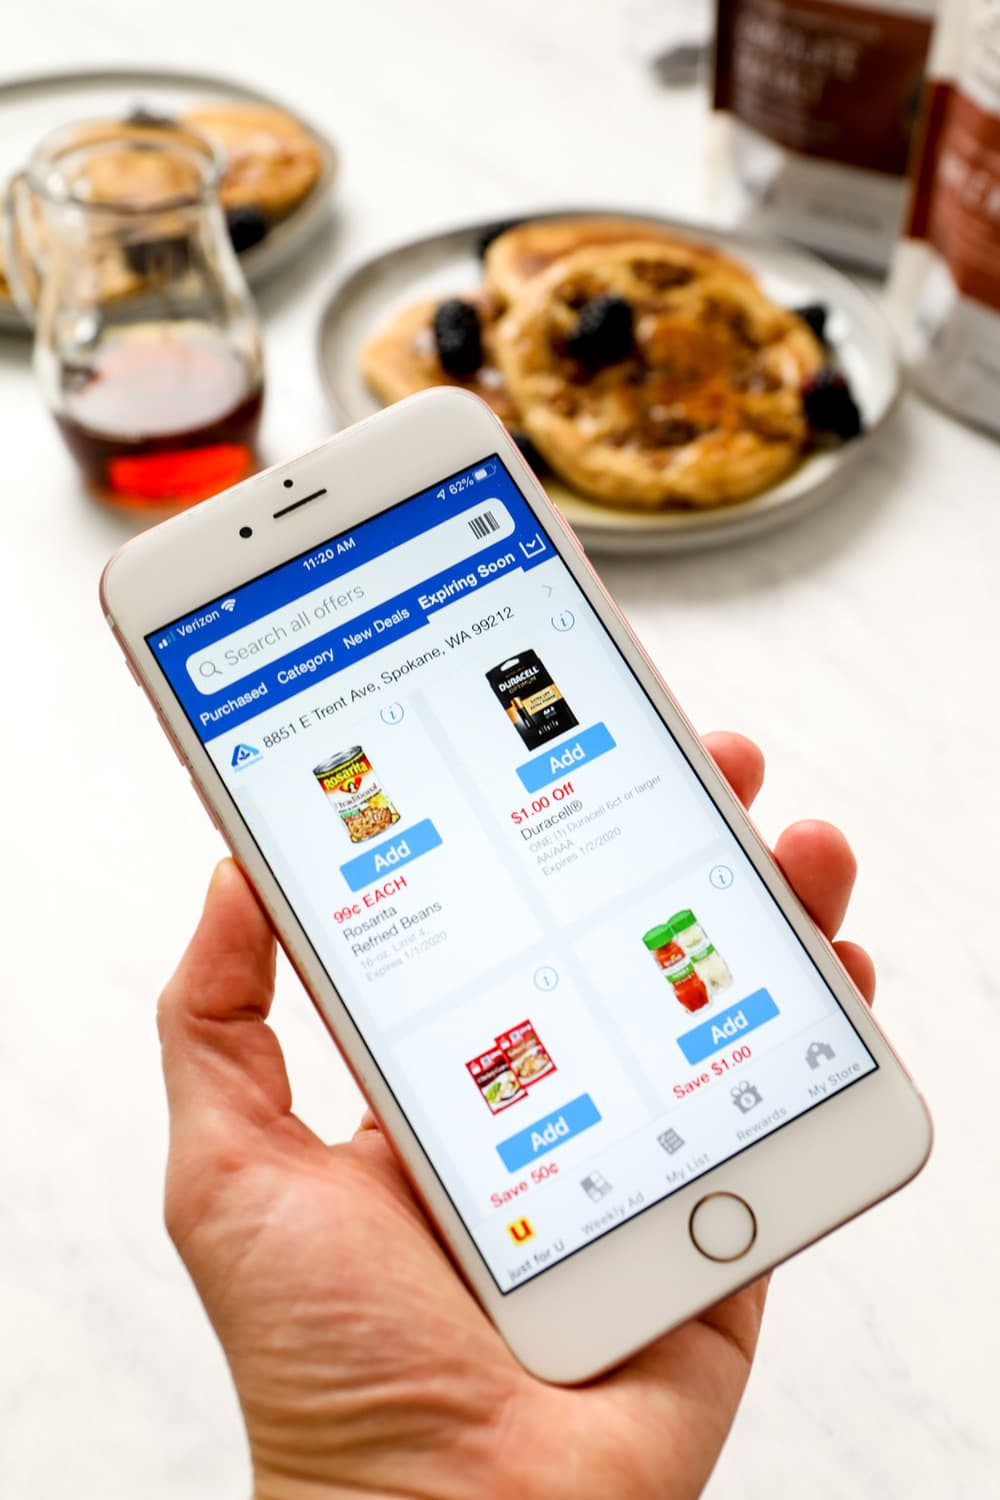 Gluten Free Granola Pancakes with the Albertsons mobile app coupons.